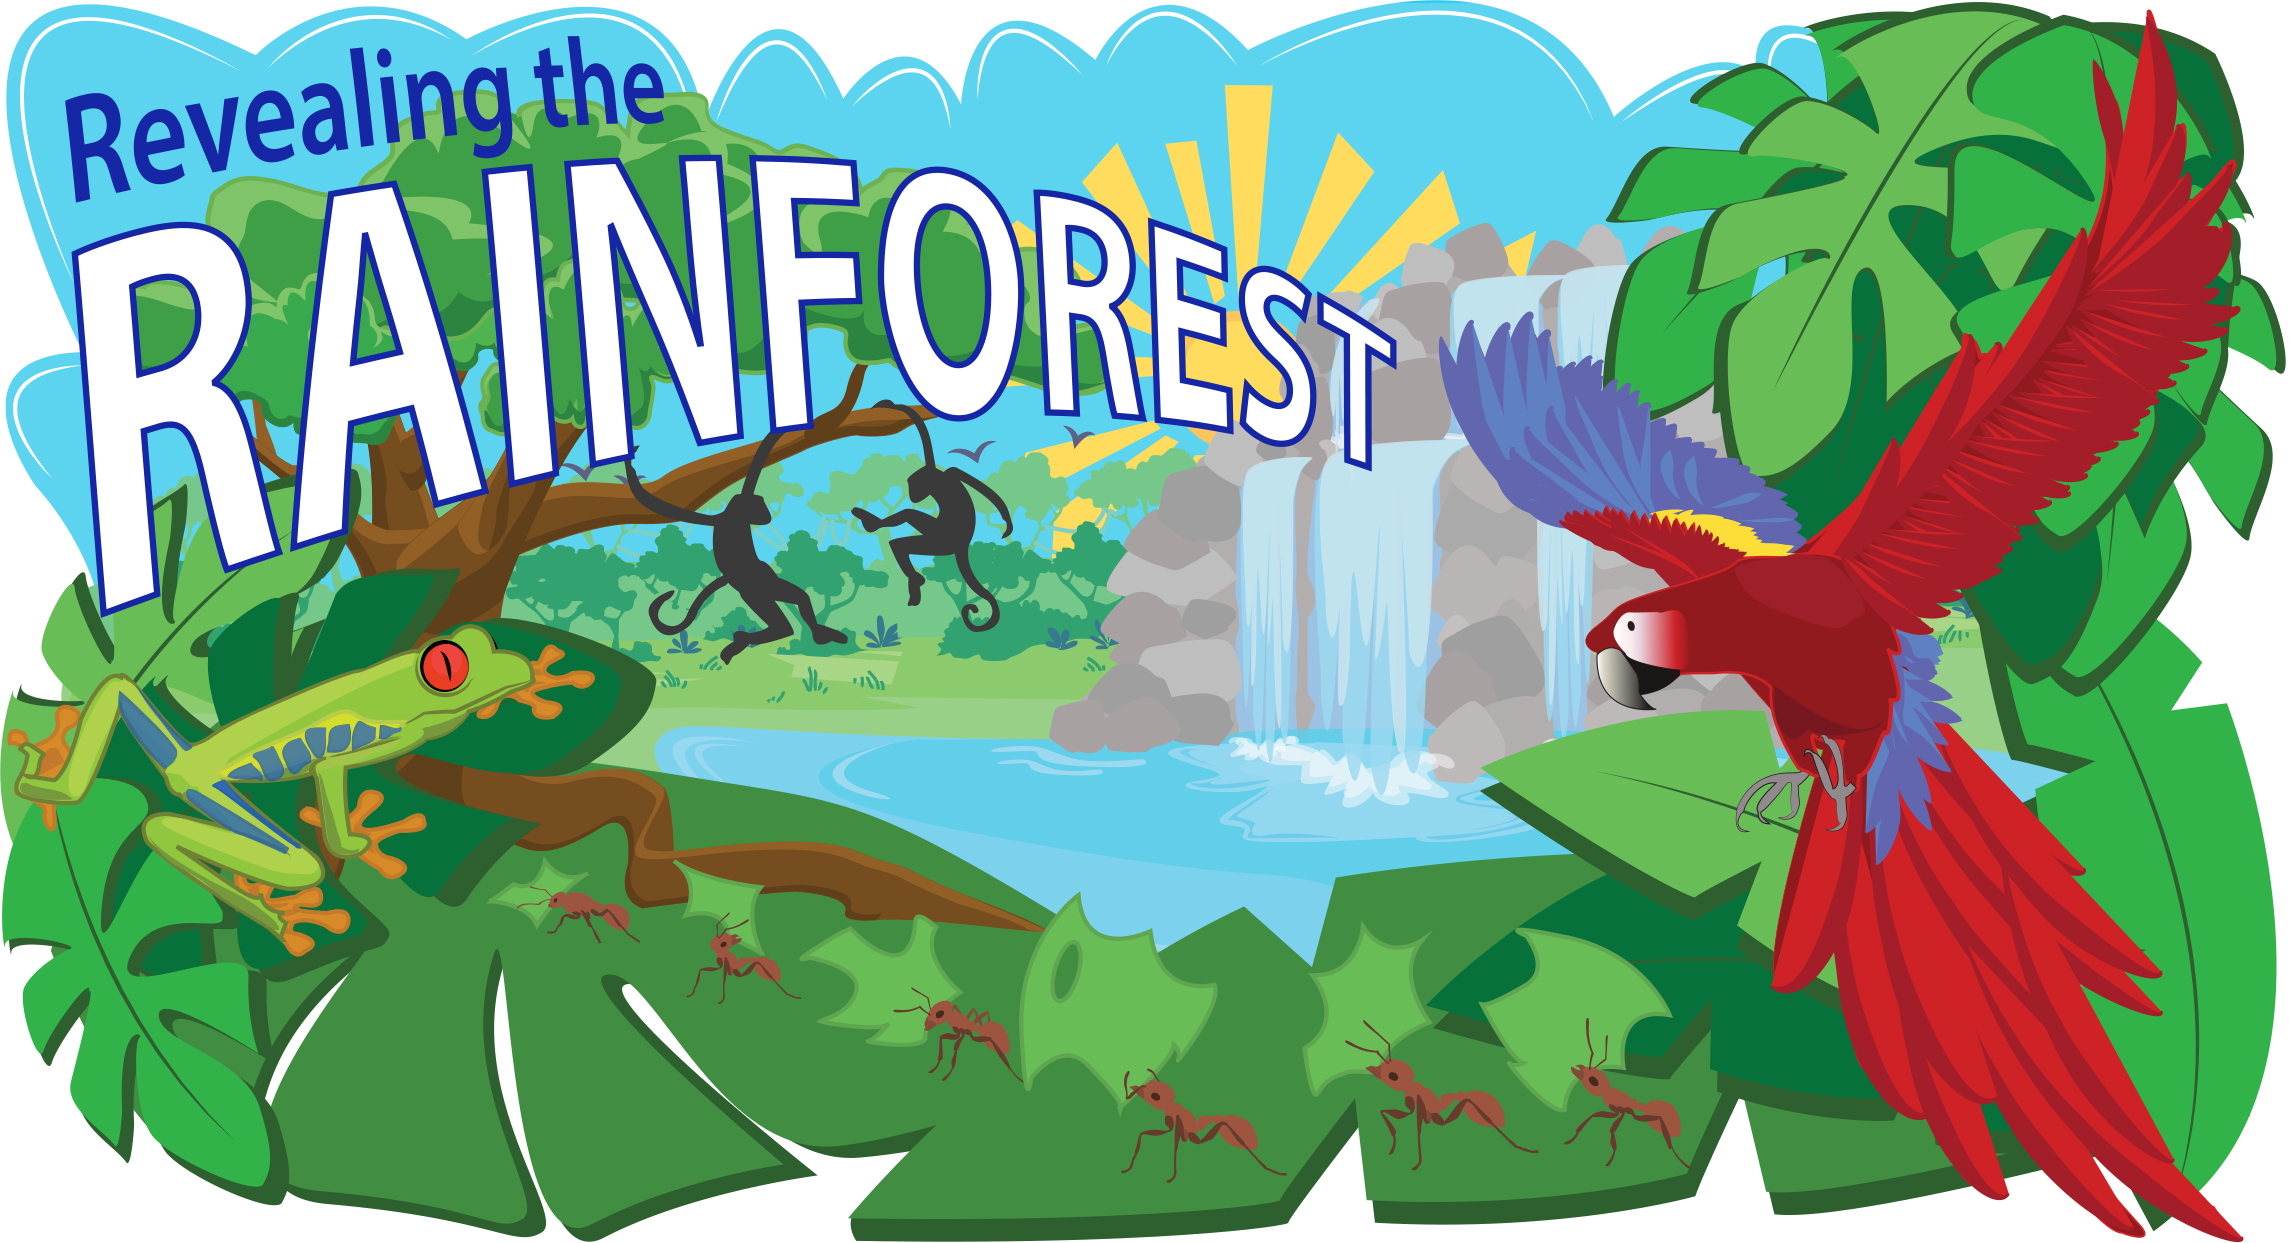 Tropical rainforest green forest. Teamwork clipart liberalism